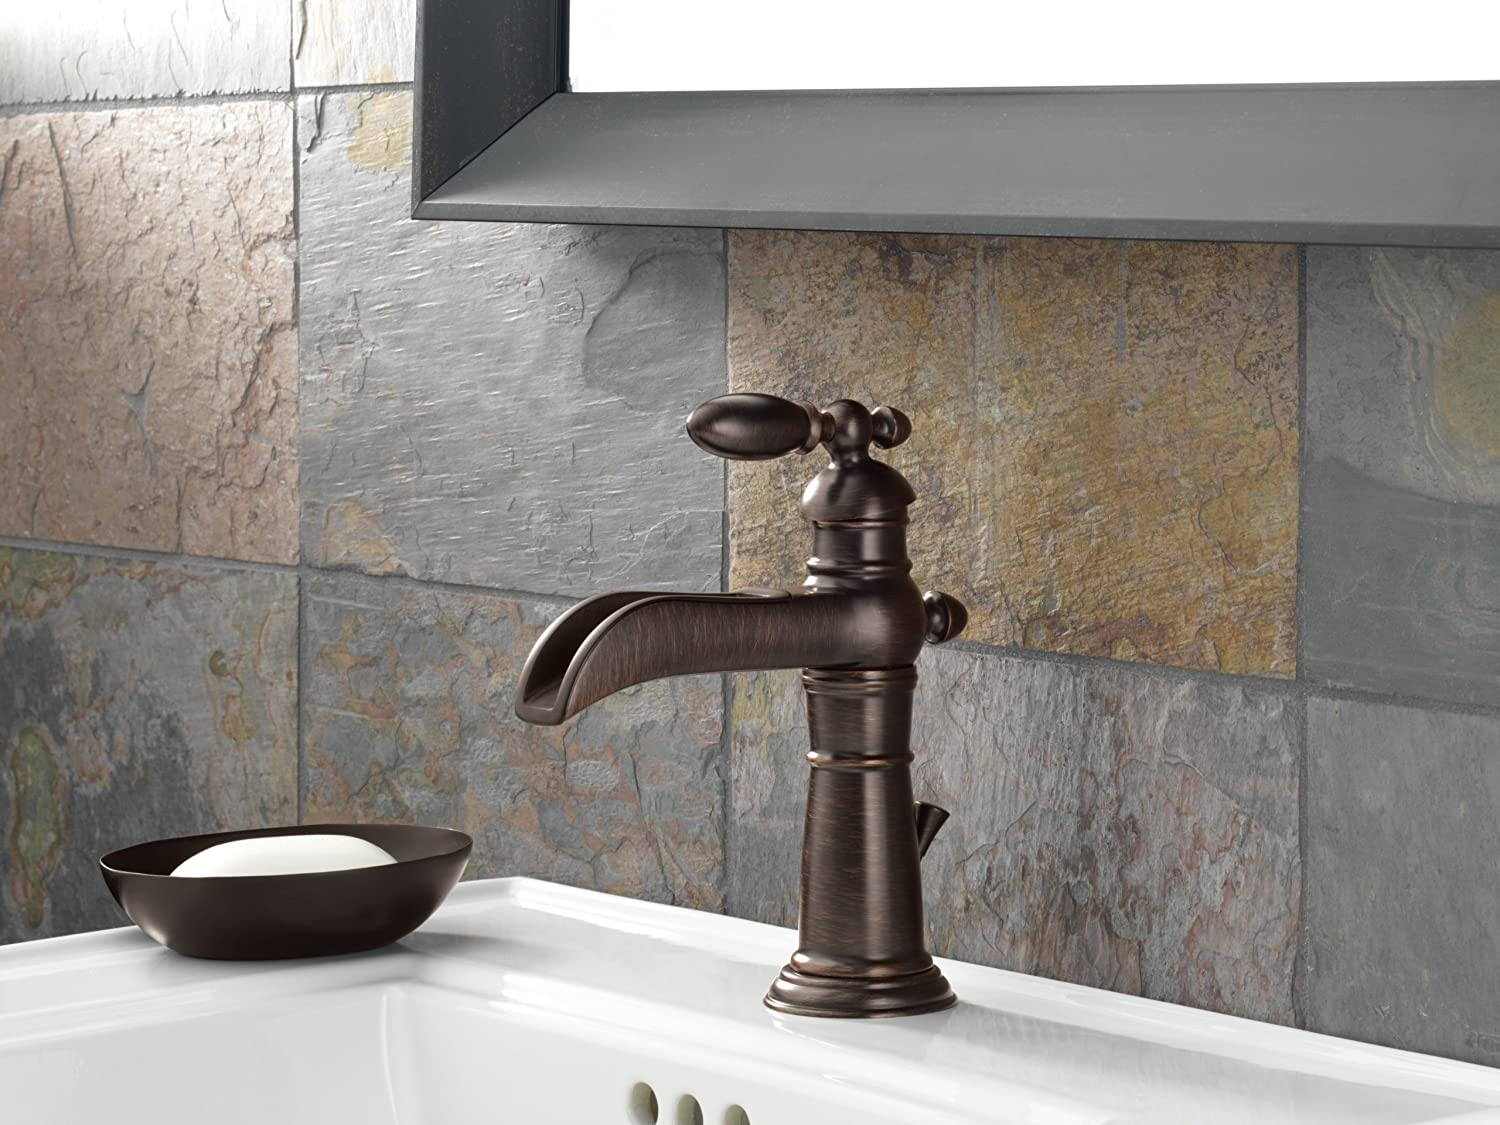 Delta Faucet 554LF RB Victorian Single Handle Single Hole Waterfall Bathroom  Faucet, Venetian Bronze   Touch On Bathroom Sink Faucets   Amazon.com